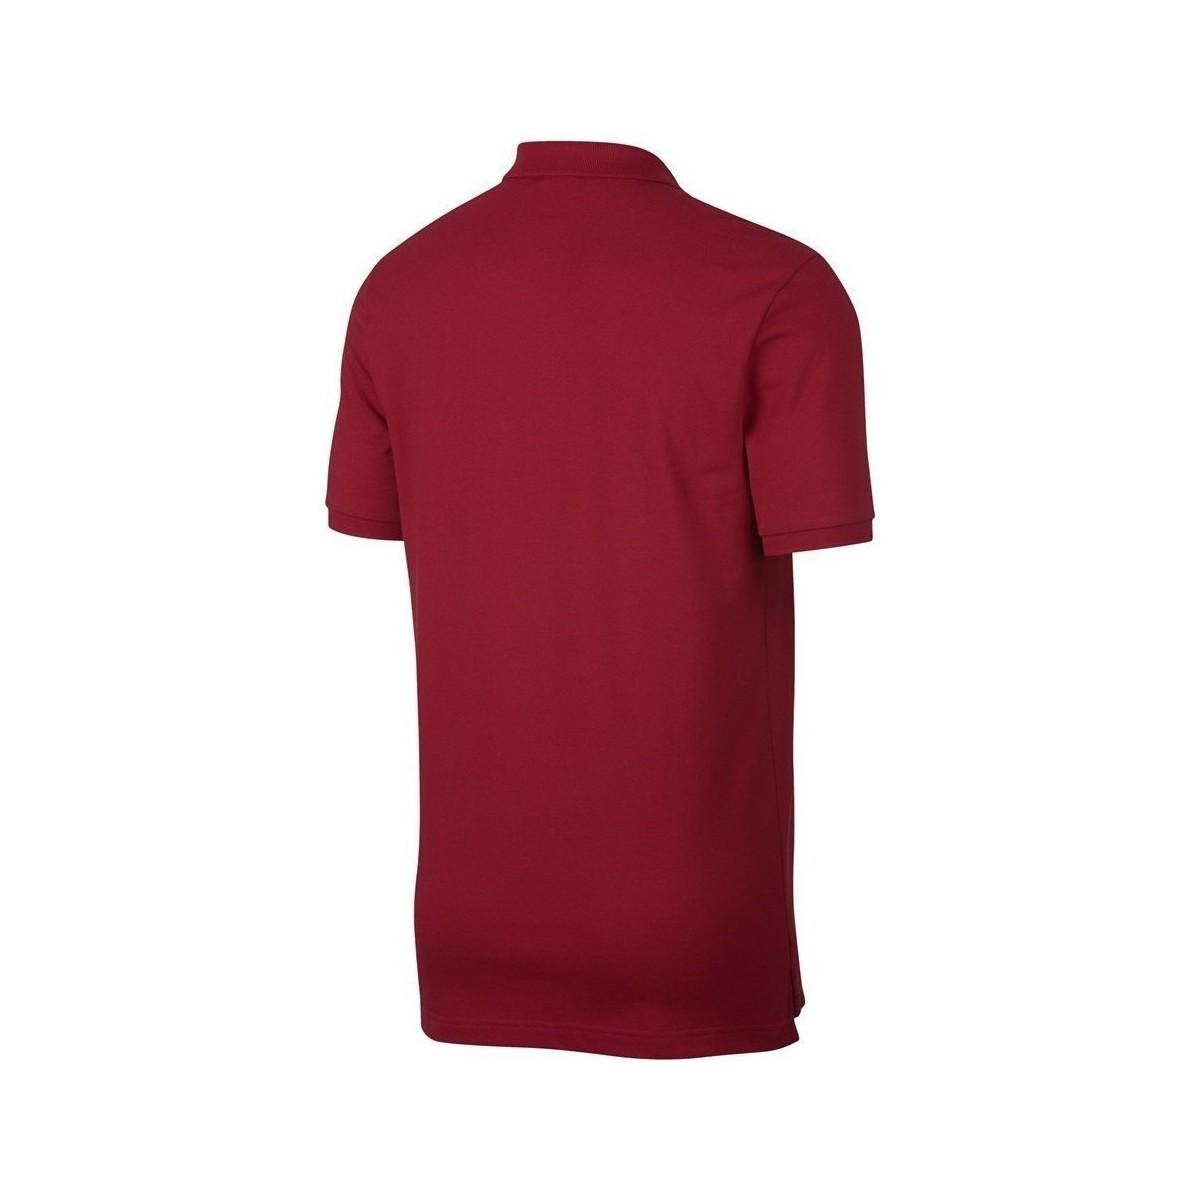 Nike Poland Wc 2018 Nsw Polo Men's Polo Shirt In Red for Men